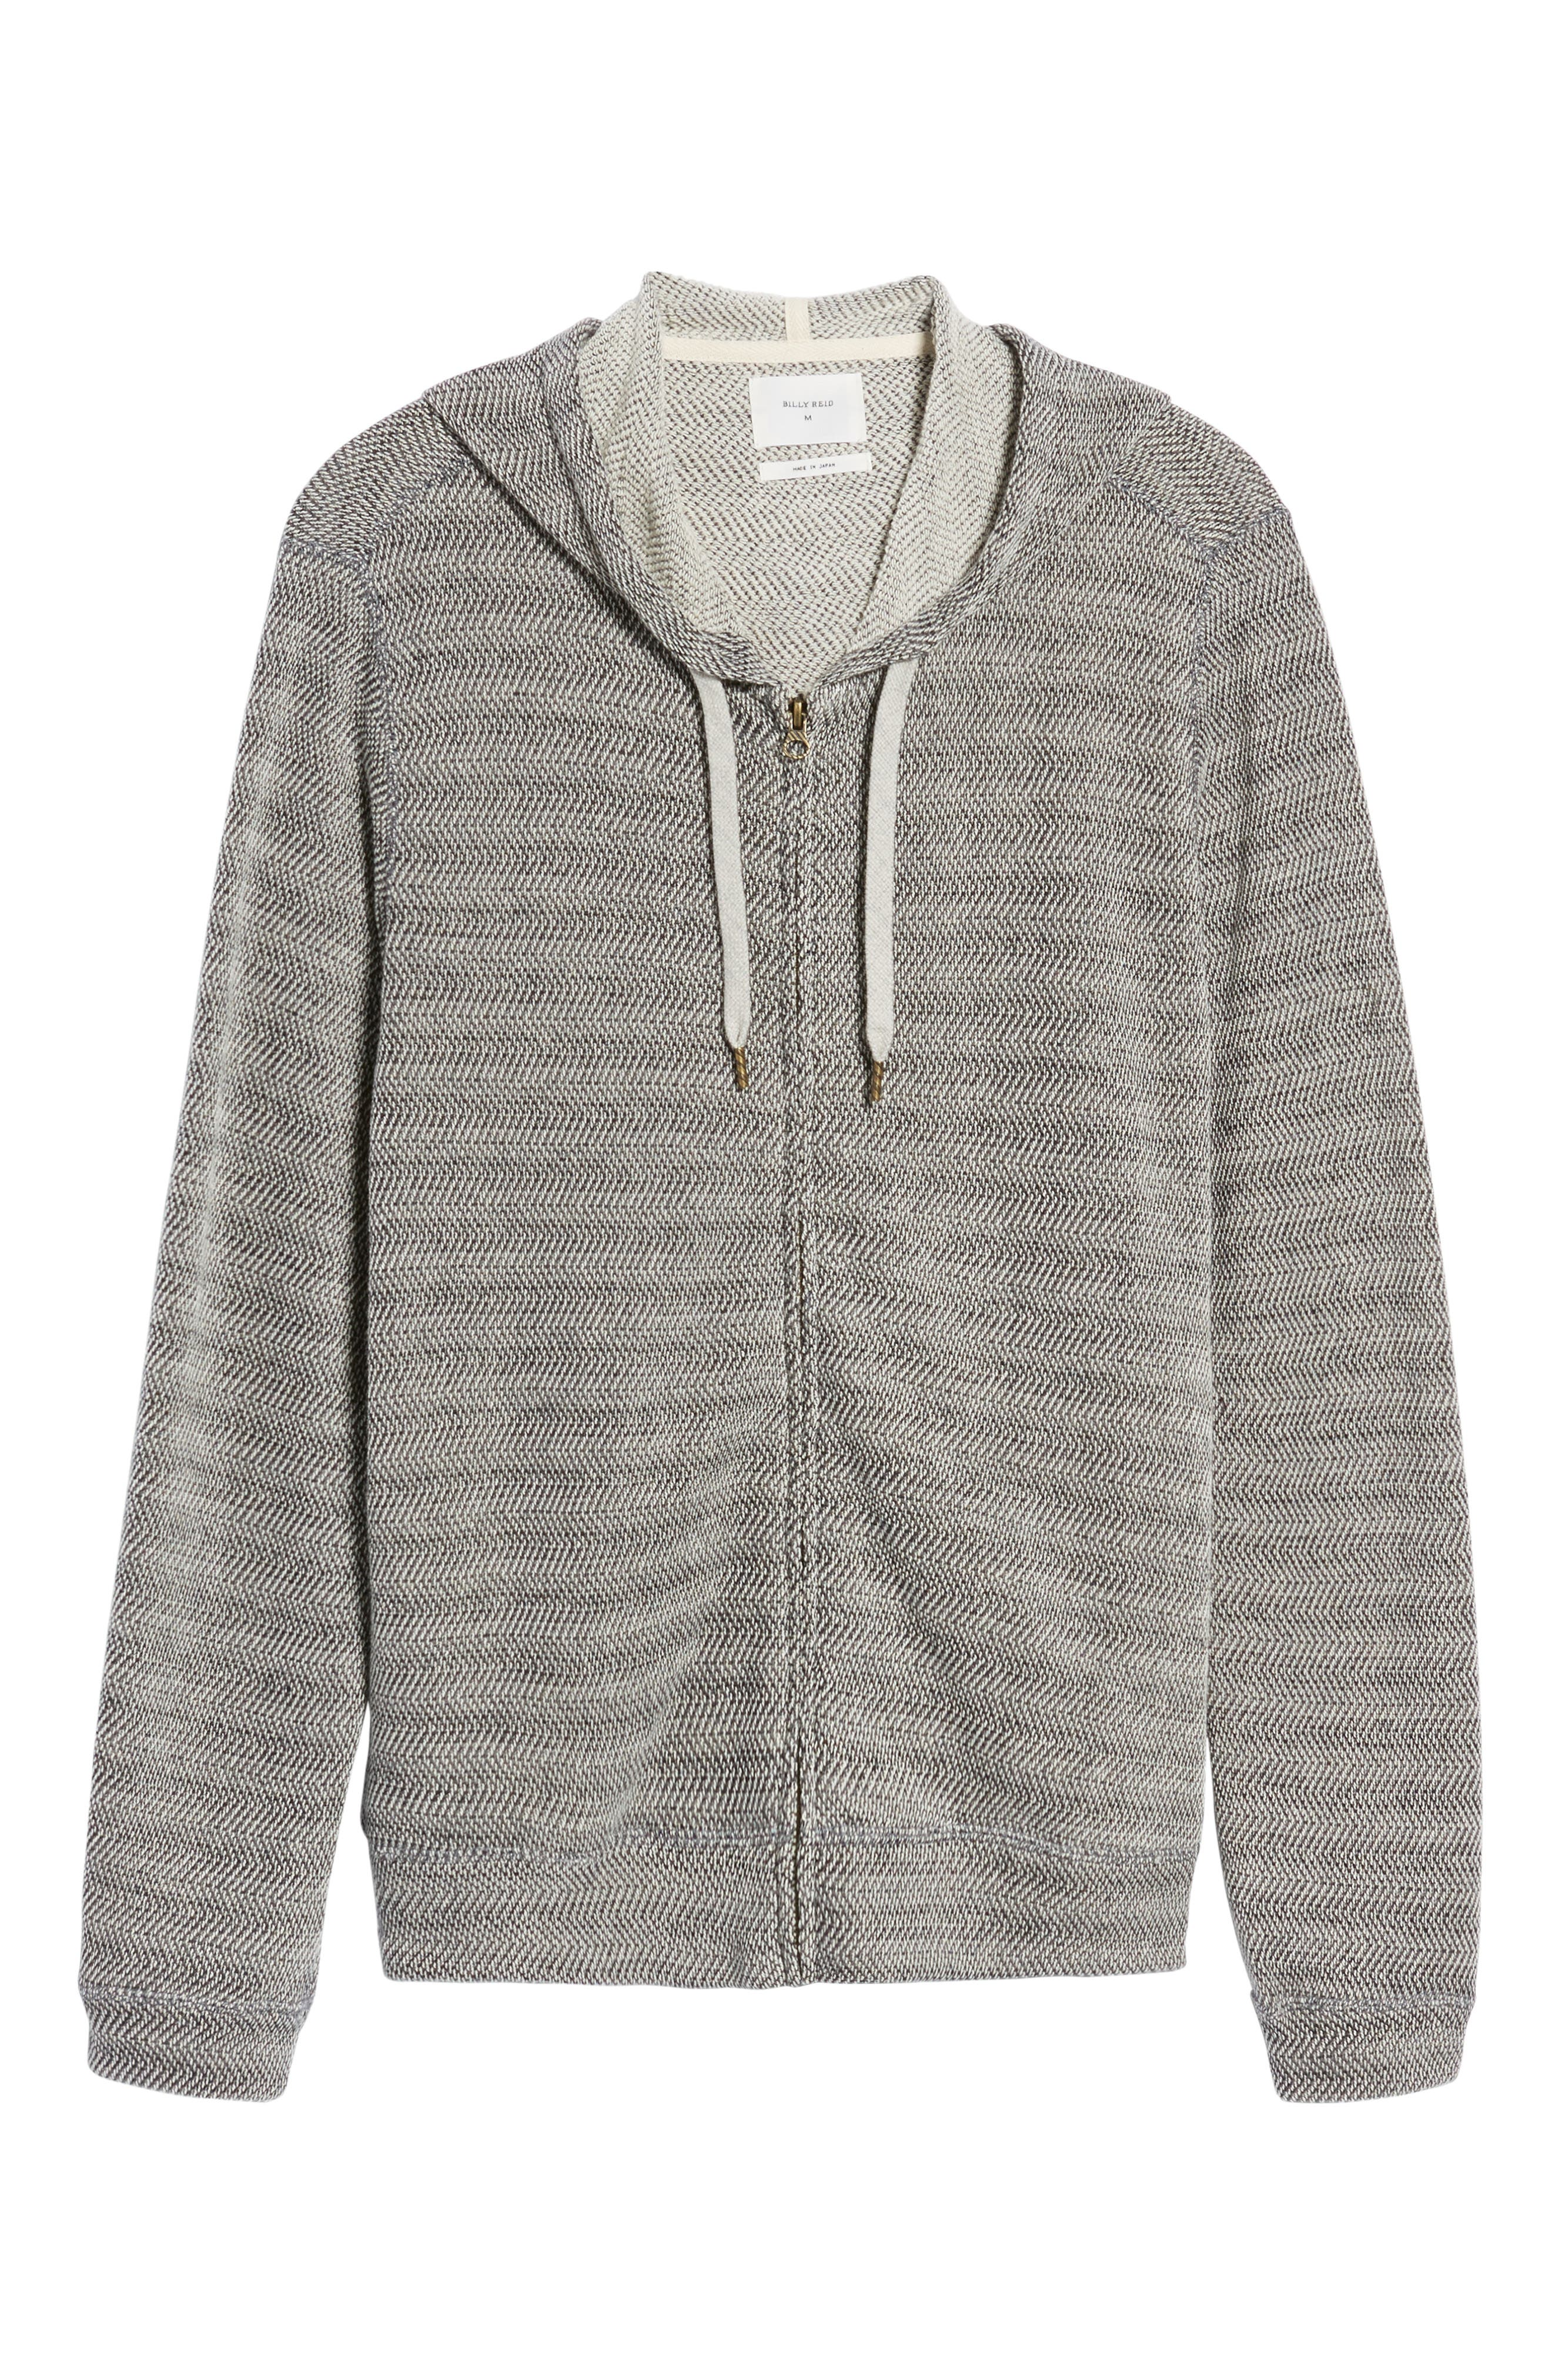 Herringbone Hoodie,                             Alternate thumbnail 6, color,                             010